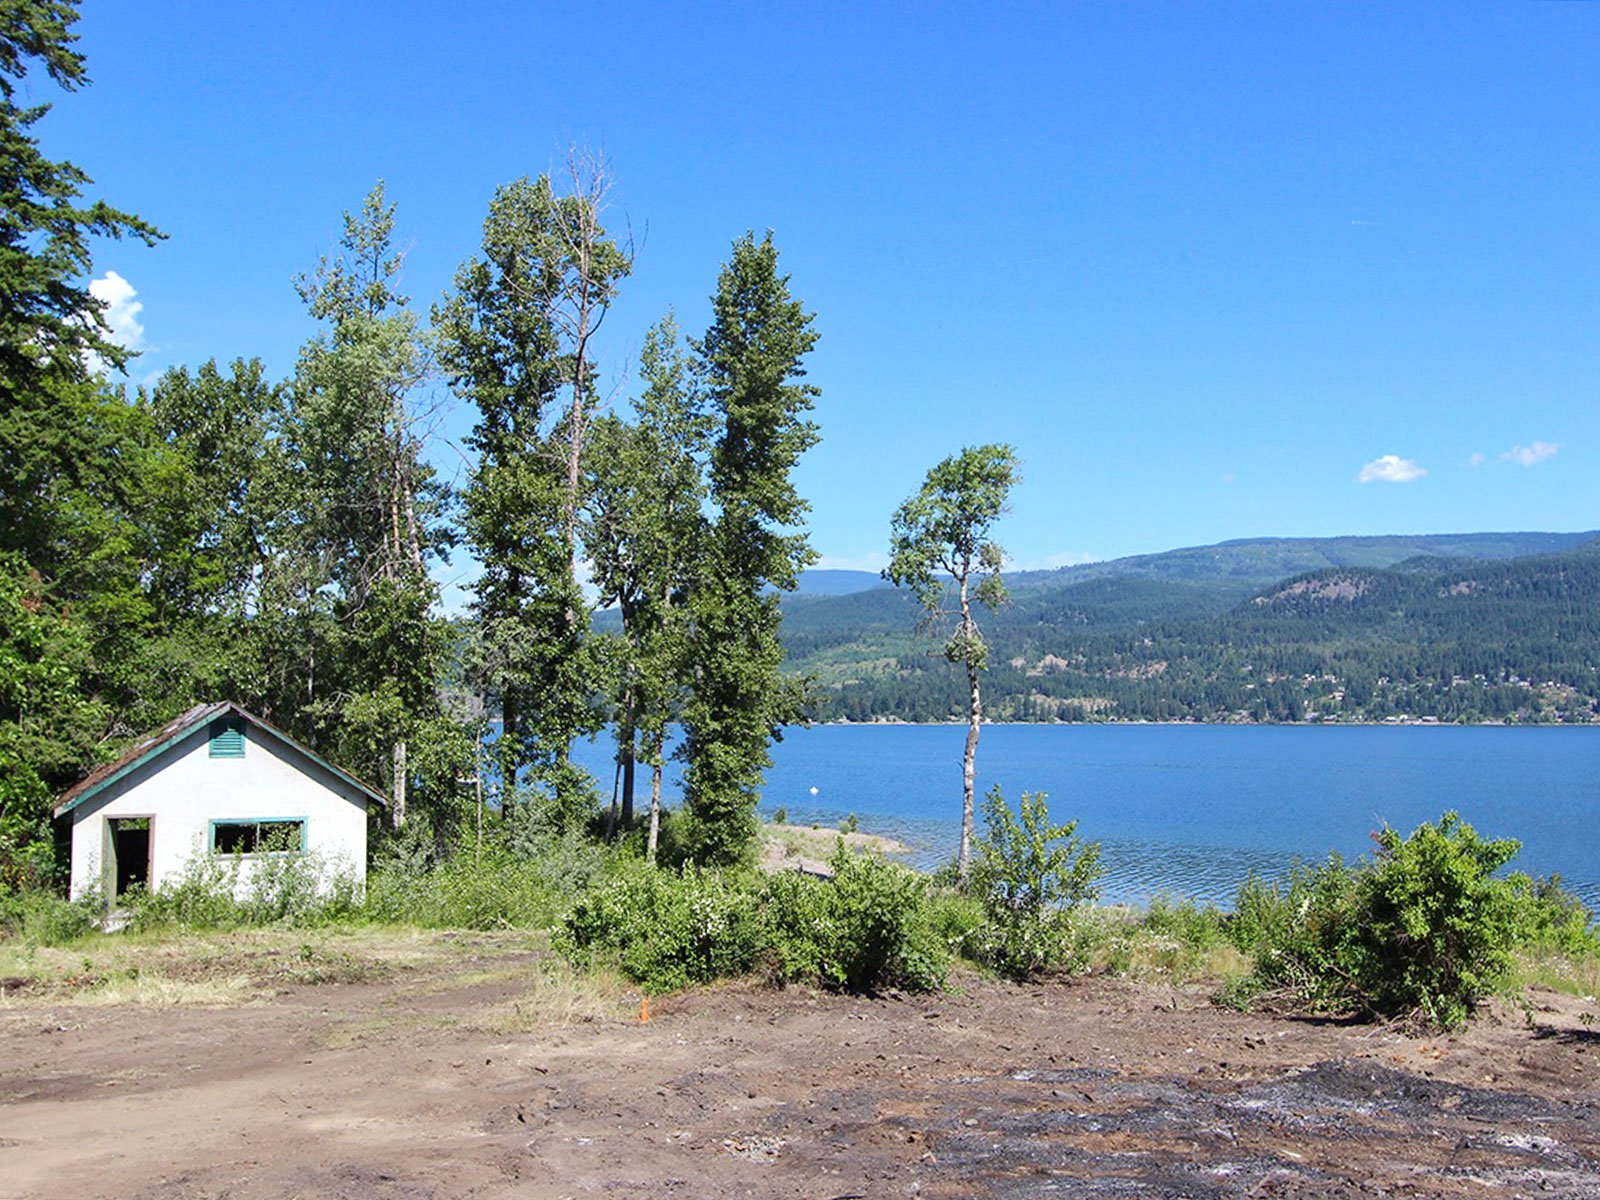 Photo 3: Photos: 663 Waverly Park Frontage Road in Sorrento, BC: Land Only for sale (Sorrento)  : MLS®# 10186241